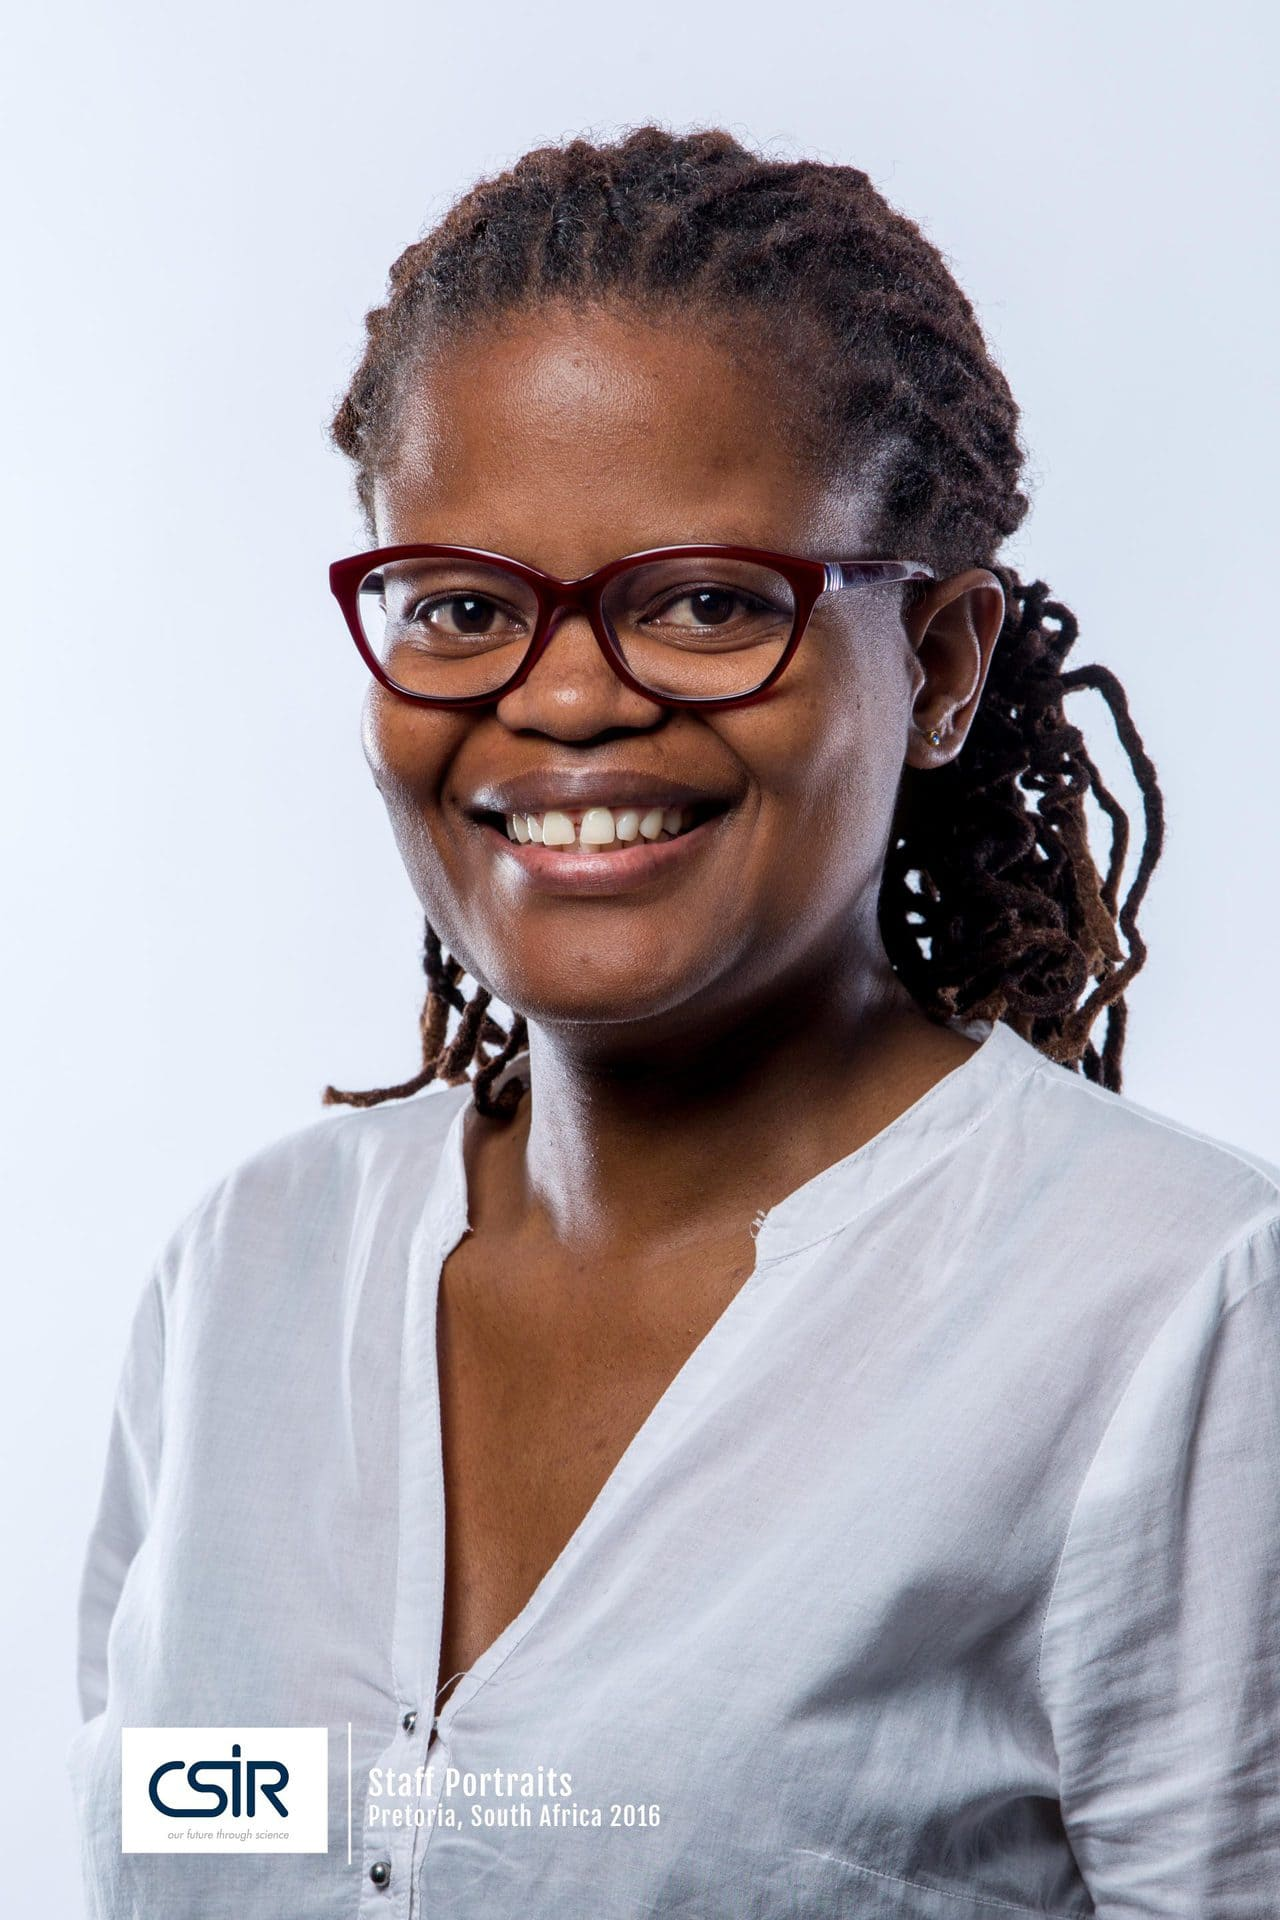 Portraits of  CSIR Staff - Black women with glasses and white top